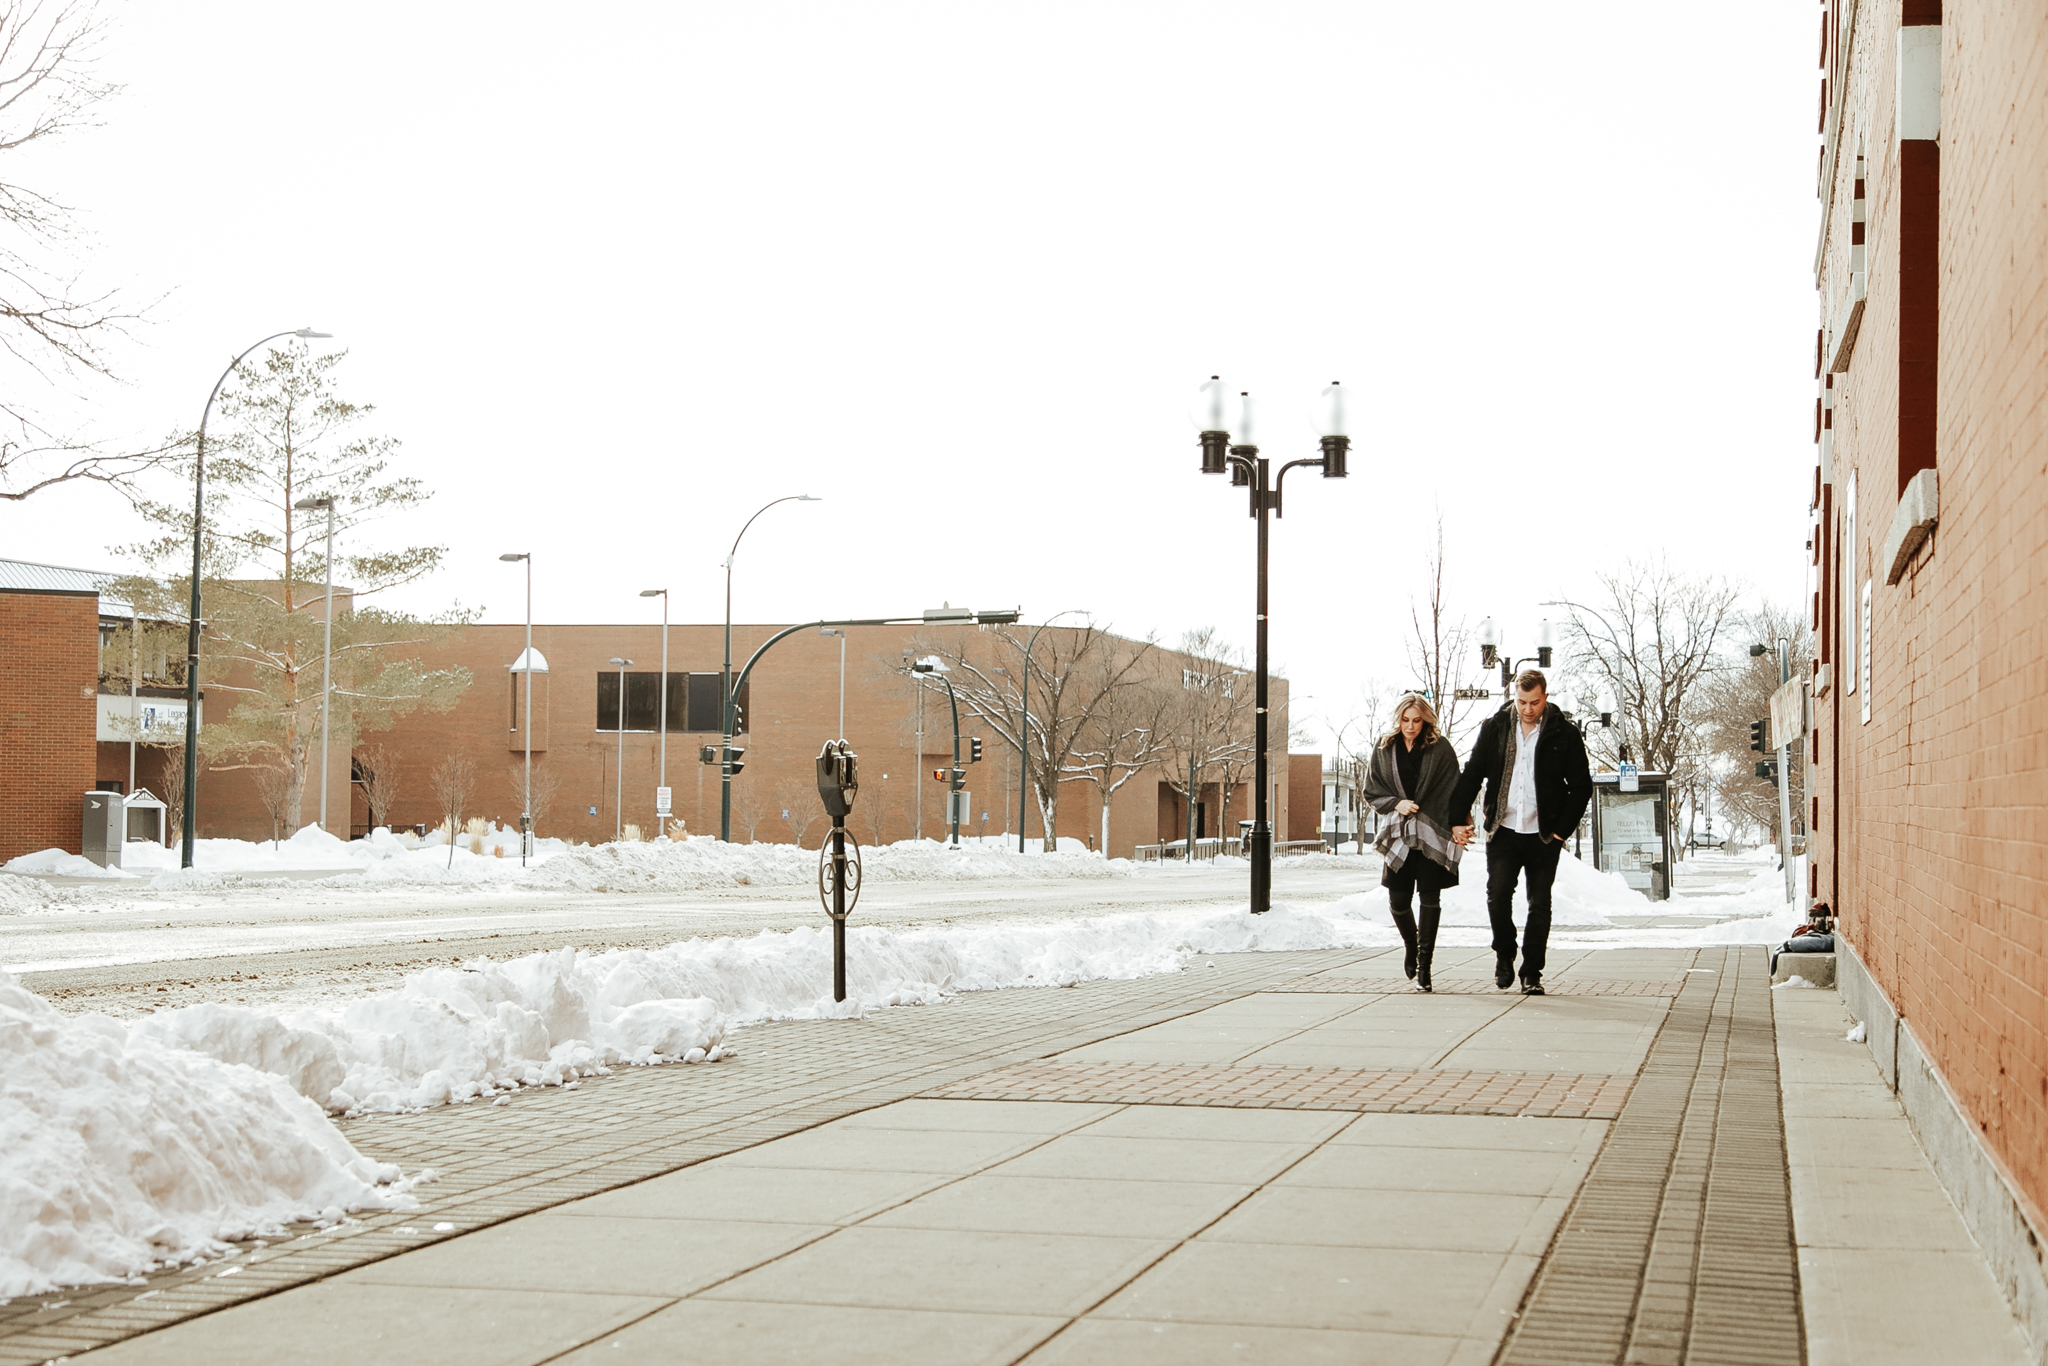 lethbridge-photographer-love-and-be-loved-photography-brandon-danielle-winter-engagement-downtown-yql-picture-image-photo-21.jpg